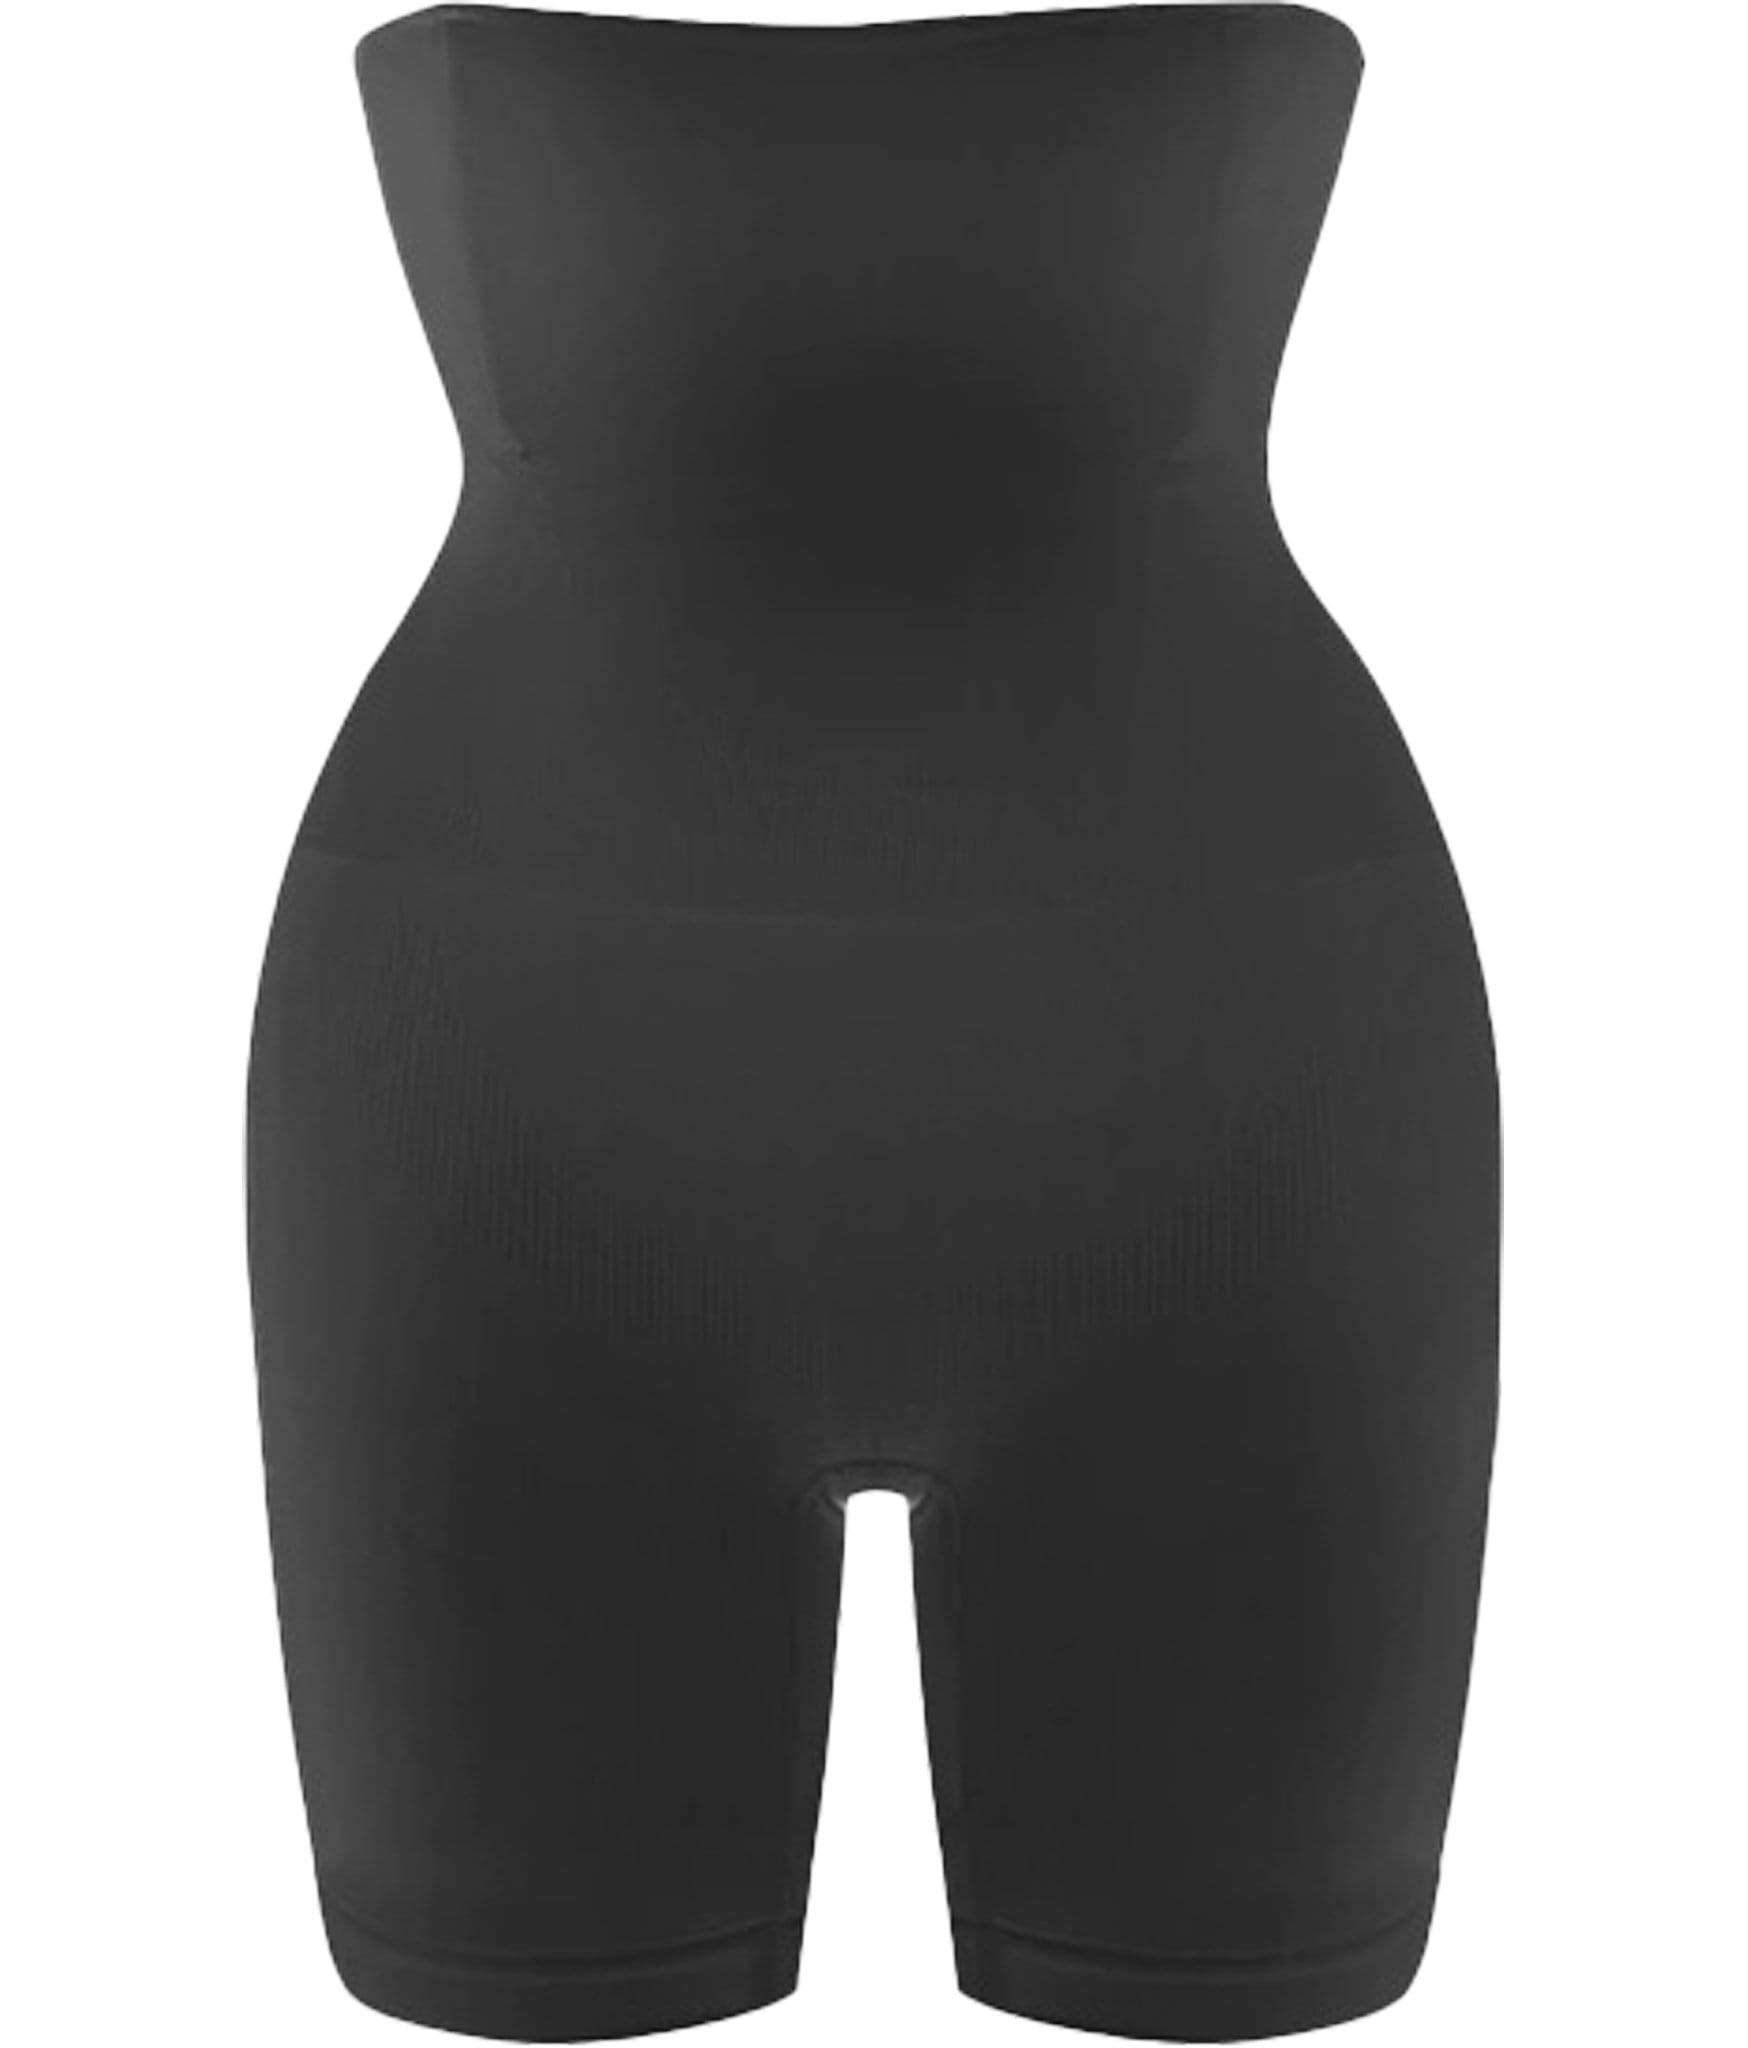 Shape For U™ Waist & Thigh Slimmer